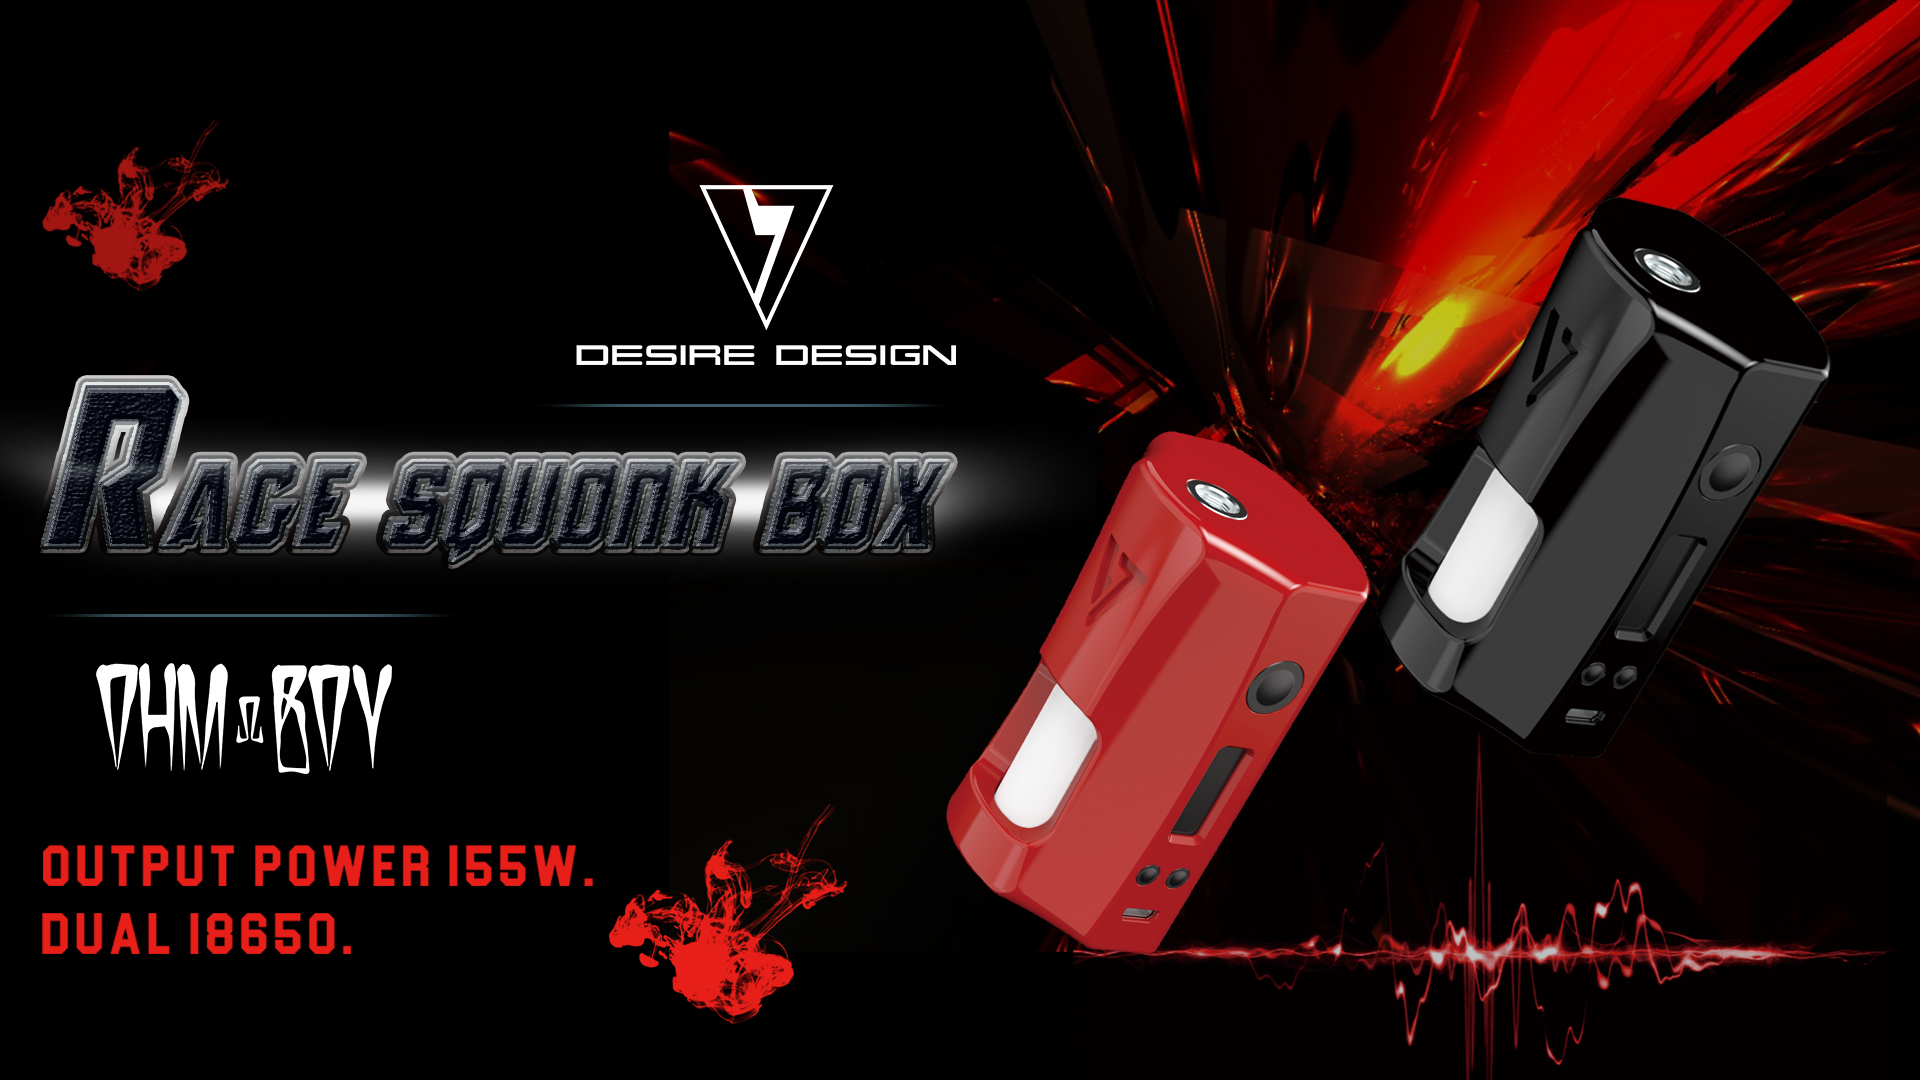 Best Selling Dual 18650 Rage Squonk Box Desire Design Rage